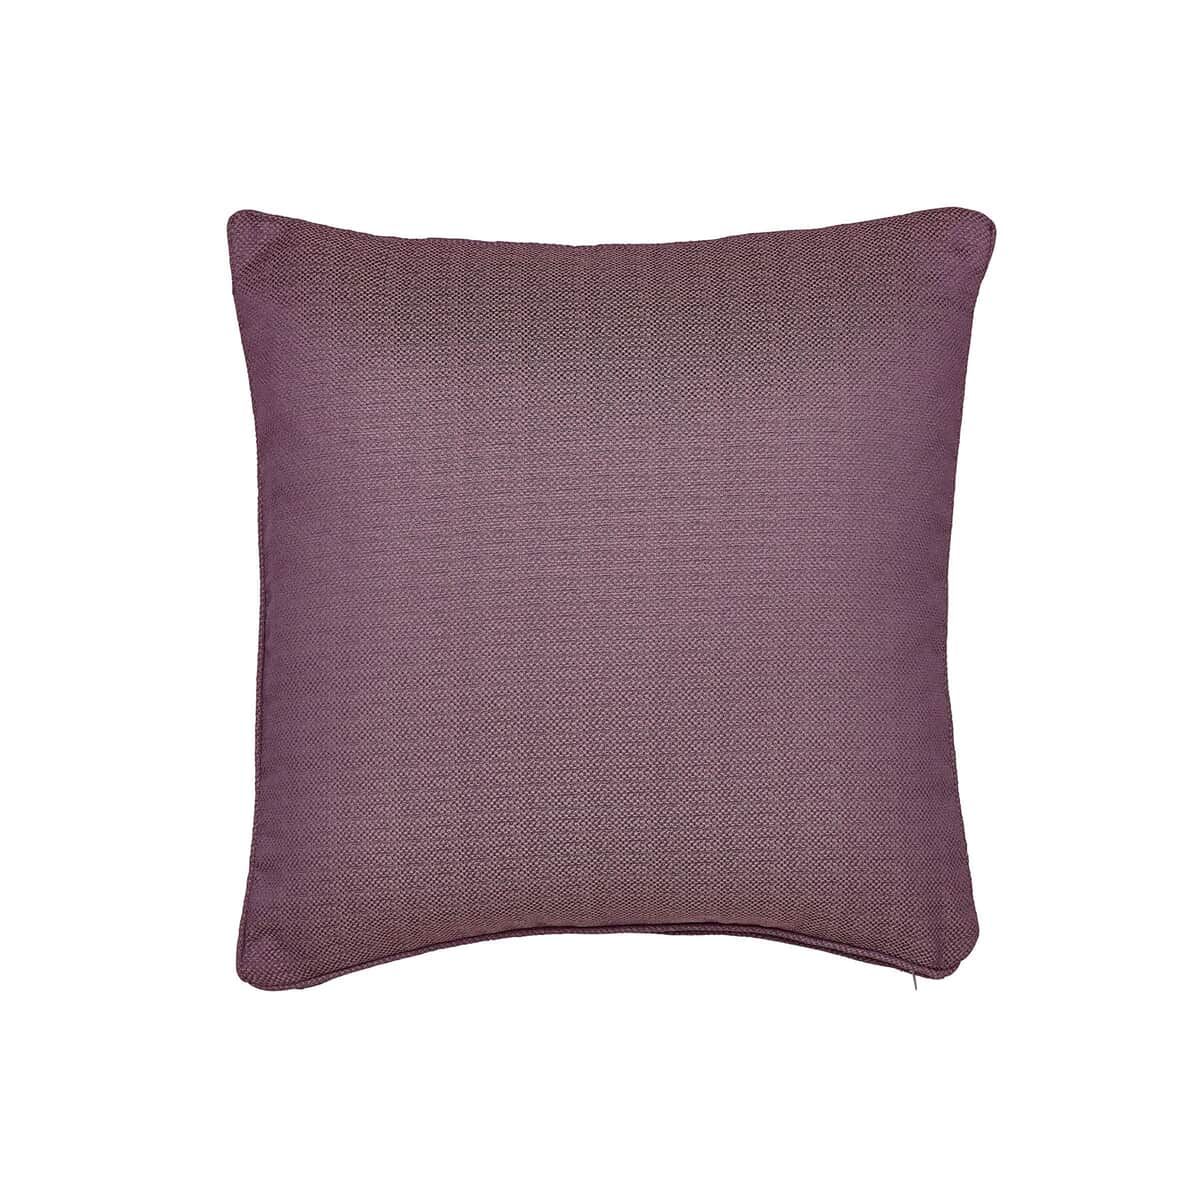 Helena Springfield Eden Grape Cushions large